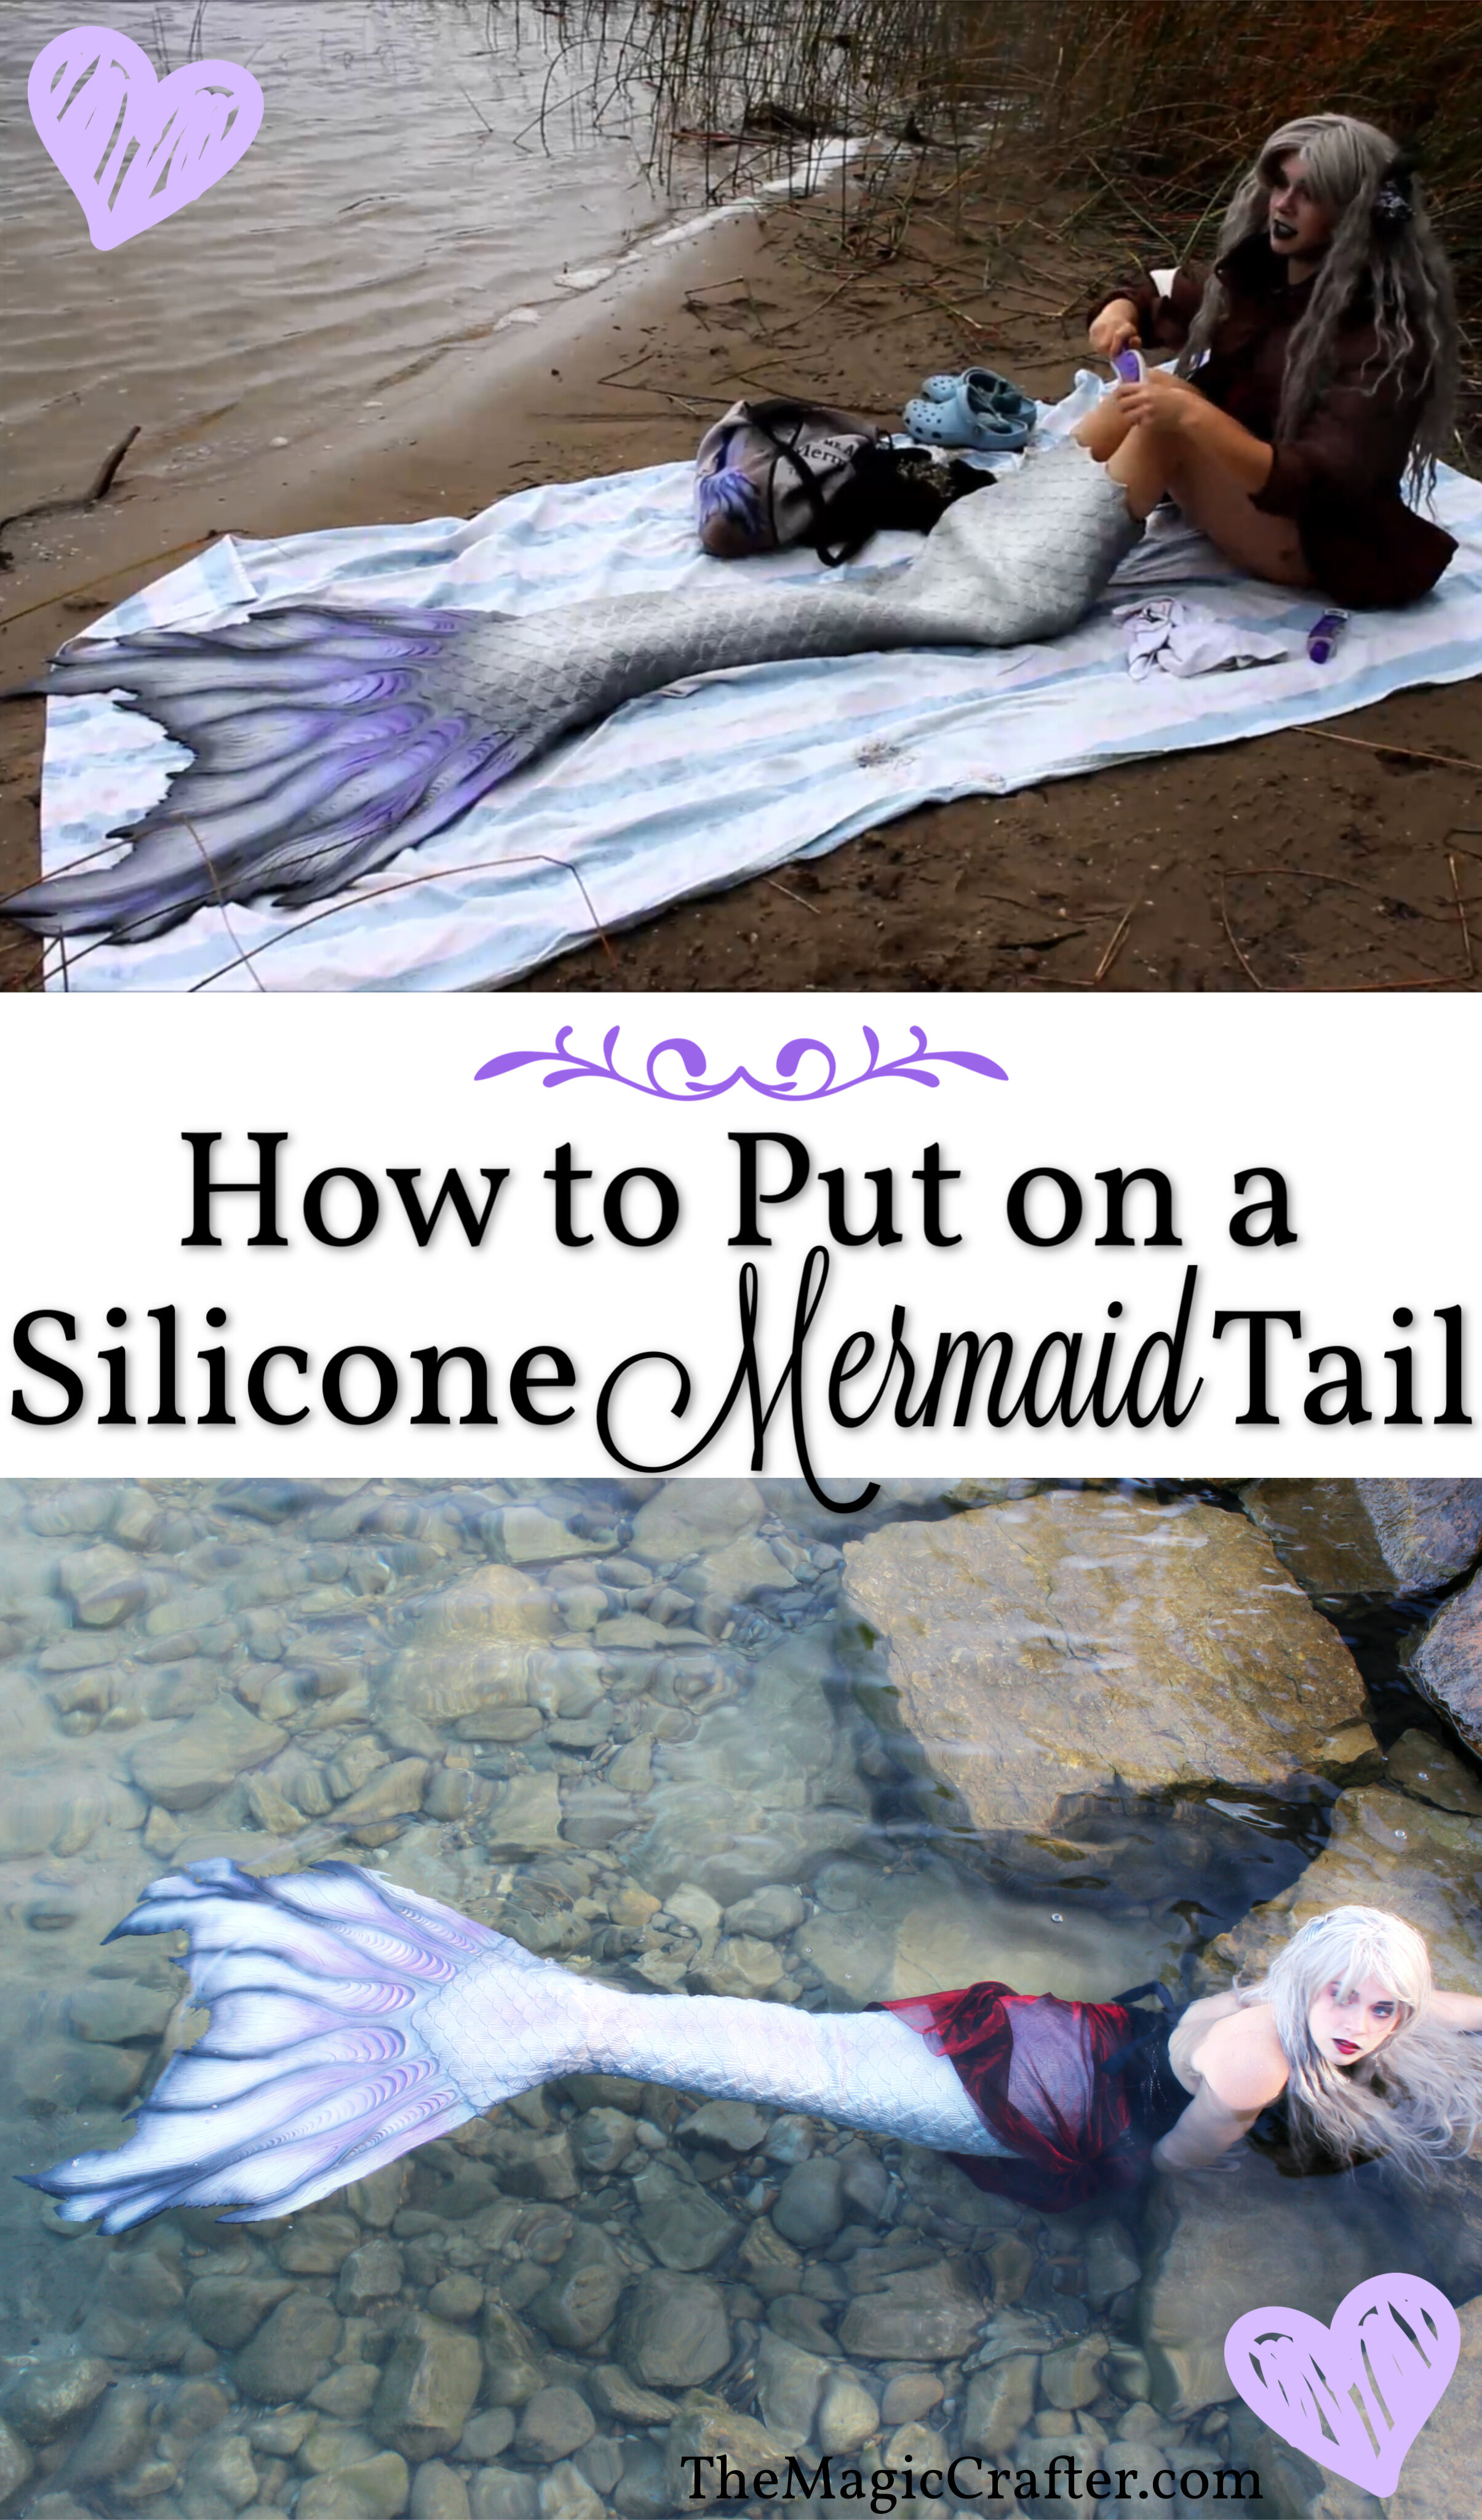 How to put on a silicone mermaid tail - How to put on a silicone mermaid tail in 5 minutes or less! This is the EASIEST way to put on a silicone mermaid tail. If you are a professional mermaid or aspiring professional mermaid and you want to know all of the tips and tricks of the mermaiding trade, then The Magic Crafter blog is the perfect place to be! ♥